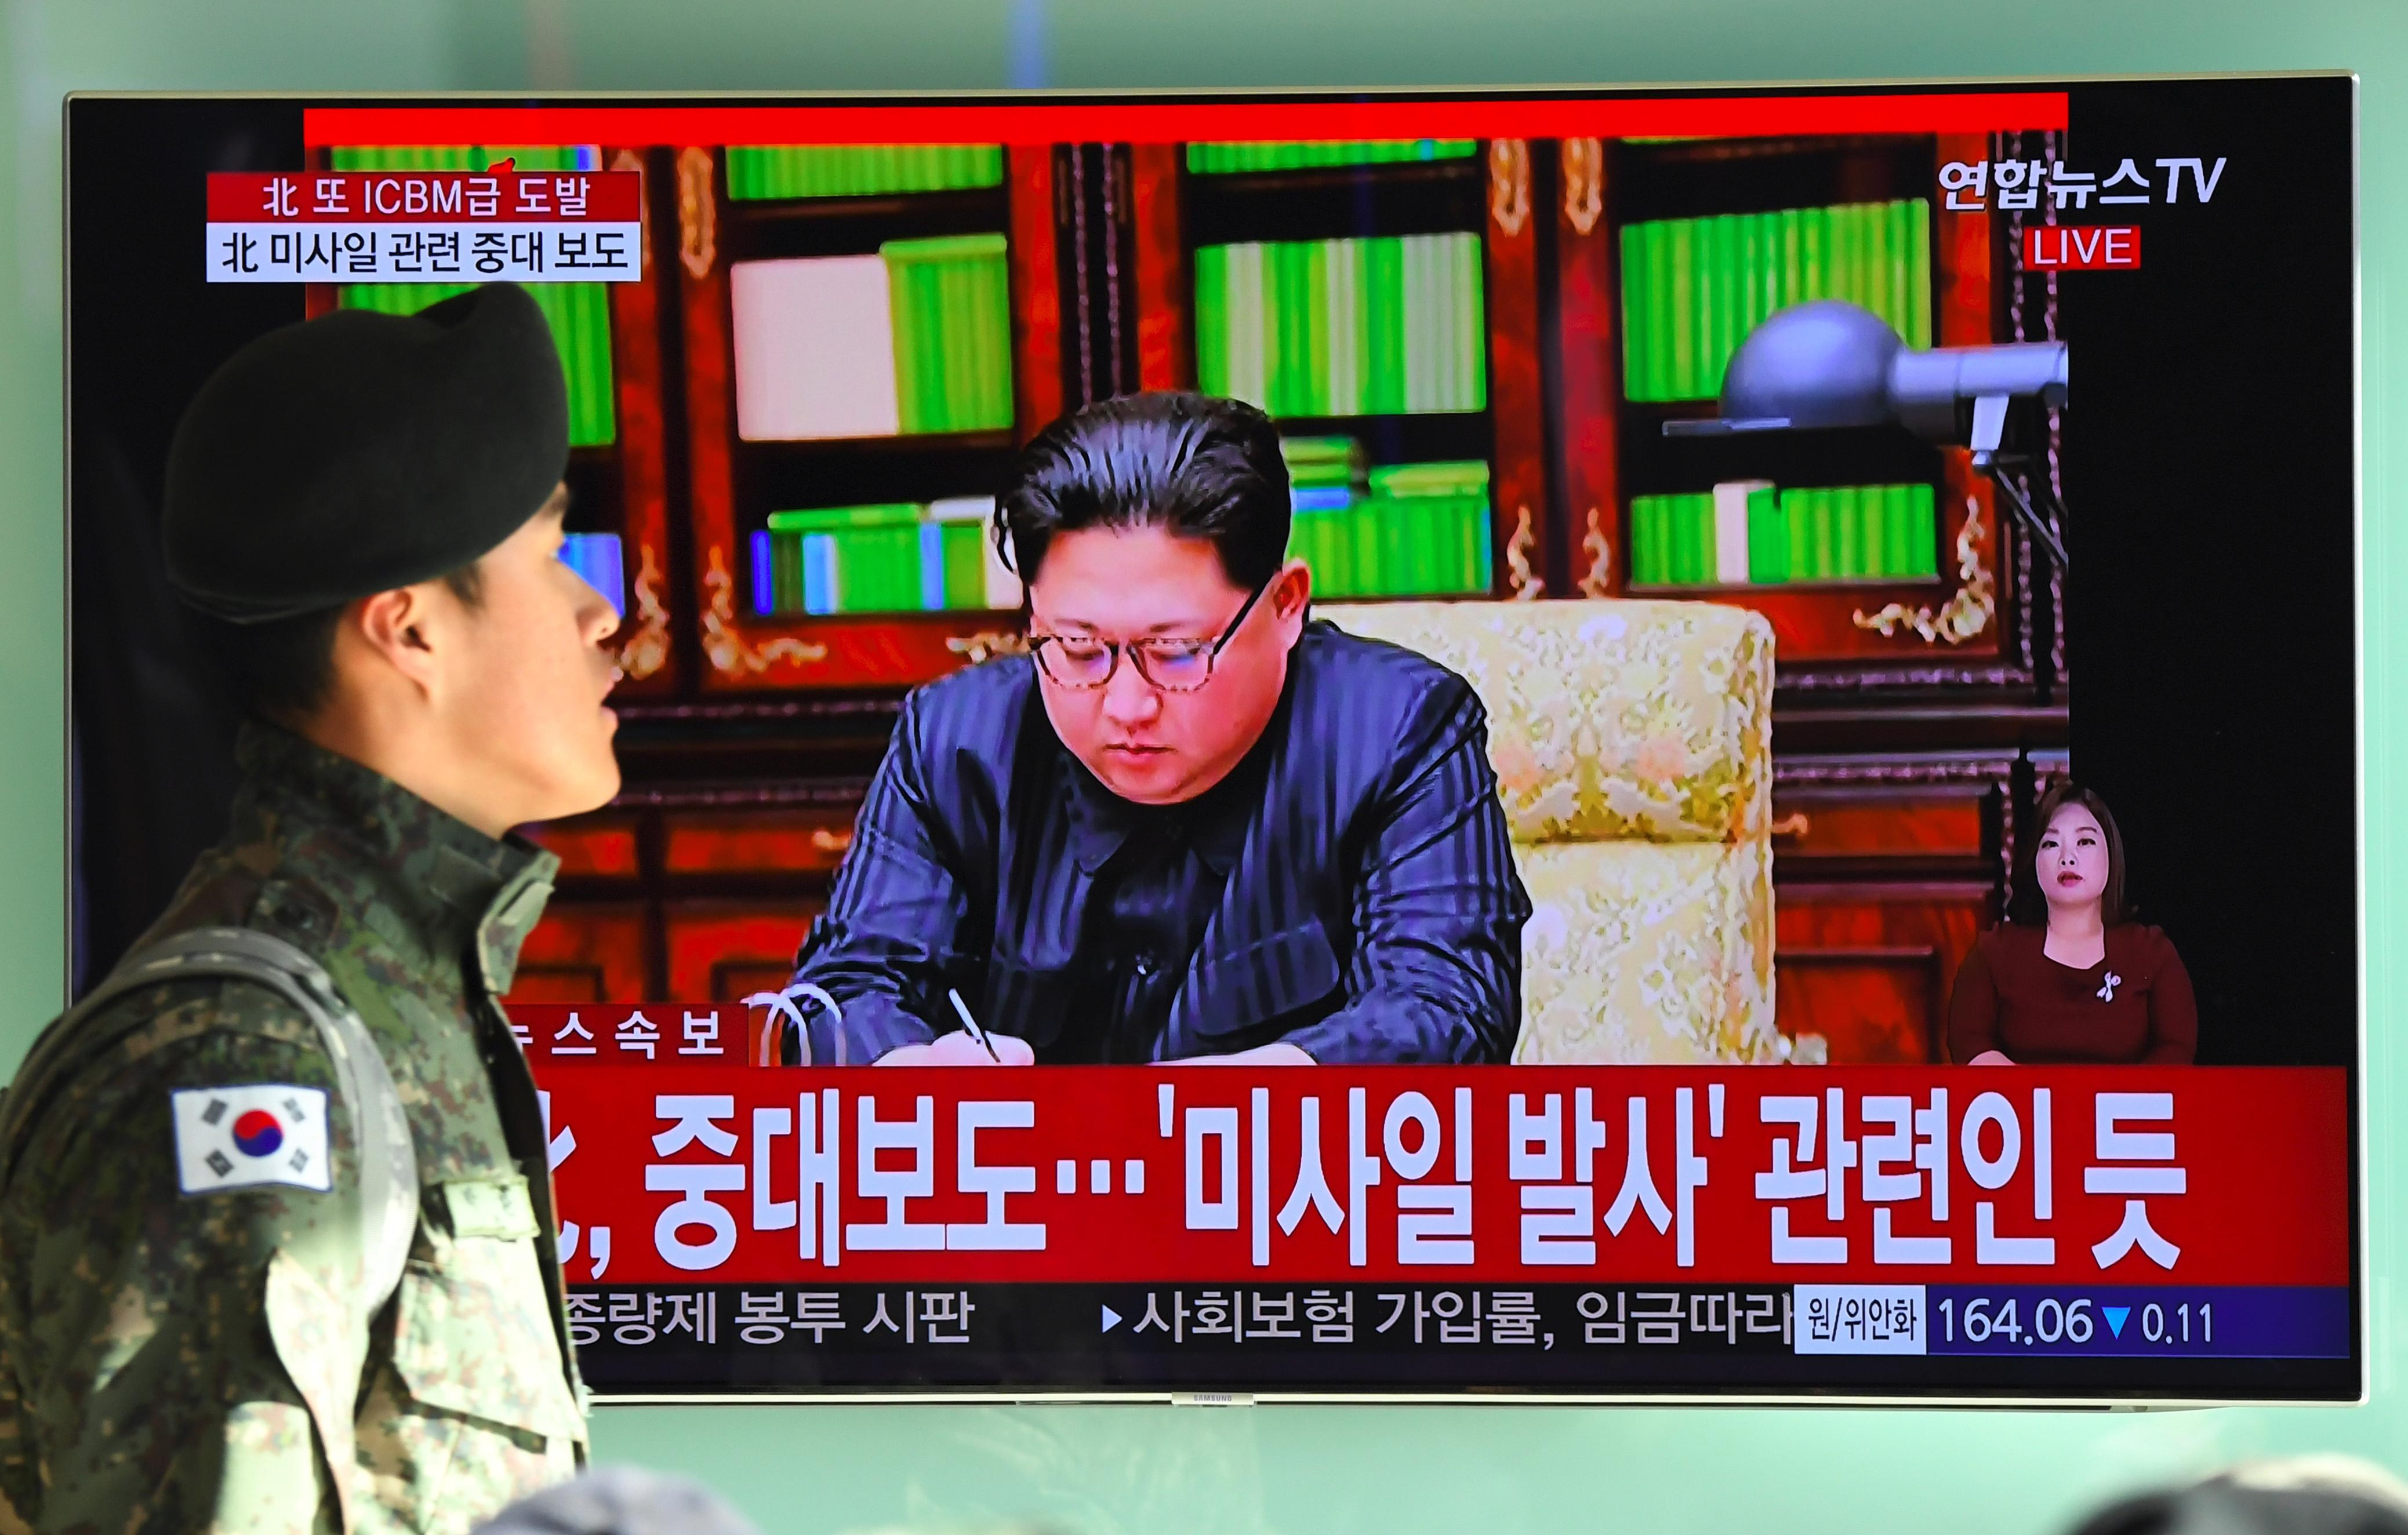 A South Korean soldier walks past a television news screen showing North Korean leader Kim Jong-Un approving the country's new ICBM test, at a railway station in Seoul on November 29, 2017         Nuclear-armed North Korea said on November 29 it had successfully tested a new intercontinental ballistic missile that put 'all of the US continent' within its range.  / AFP PHOTO / JUNG Yeon-Je        (Photo credit should read JUNG YEON-JE/AFP/Getty Images)